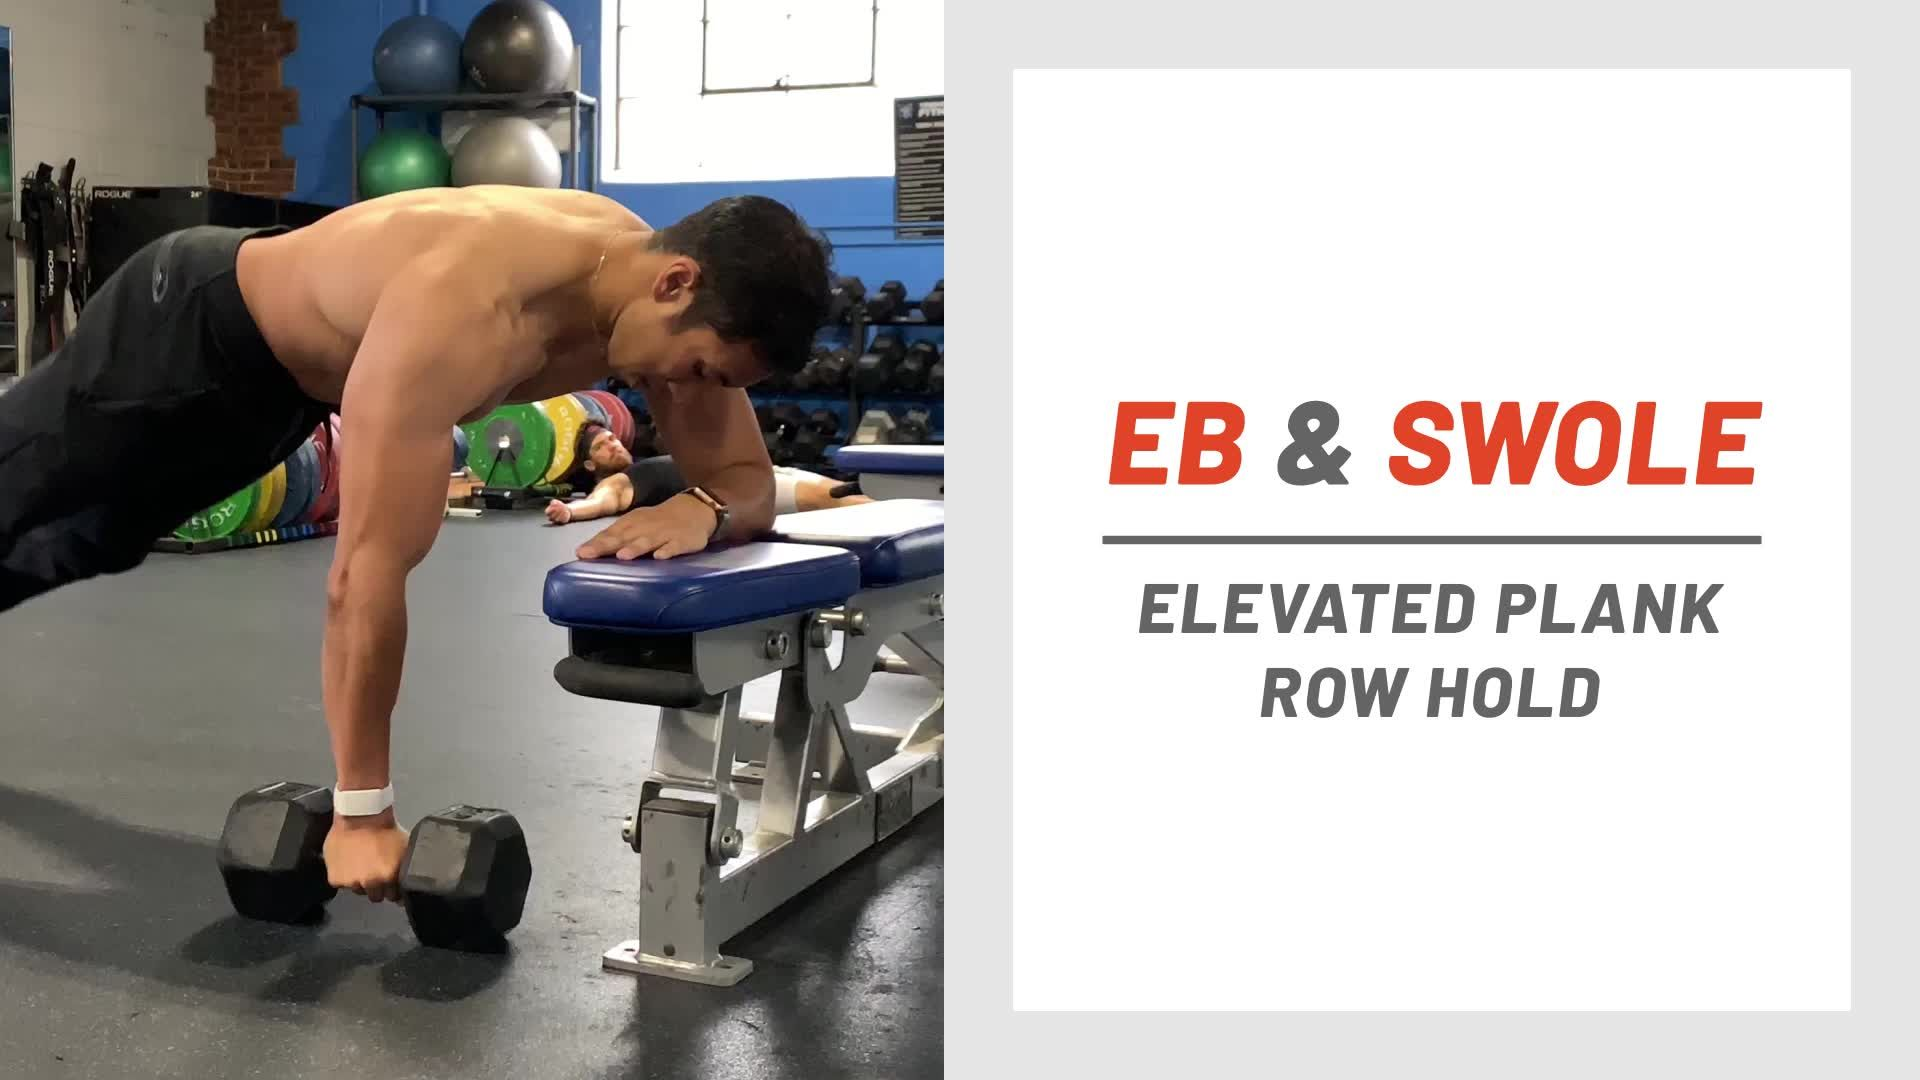 Elevate Your Ab Workout While You Build Up Your Back